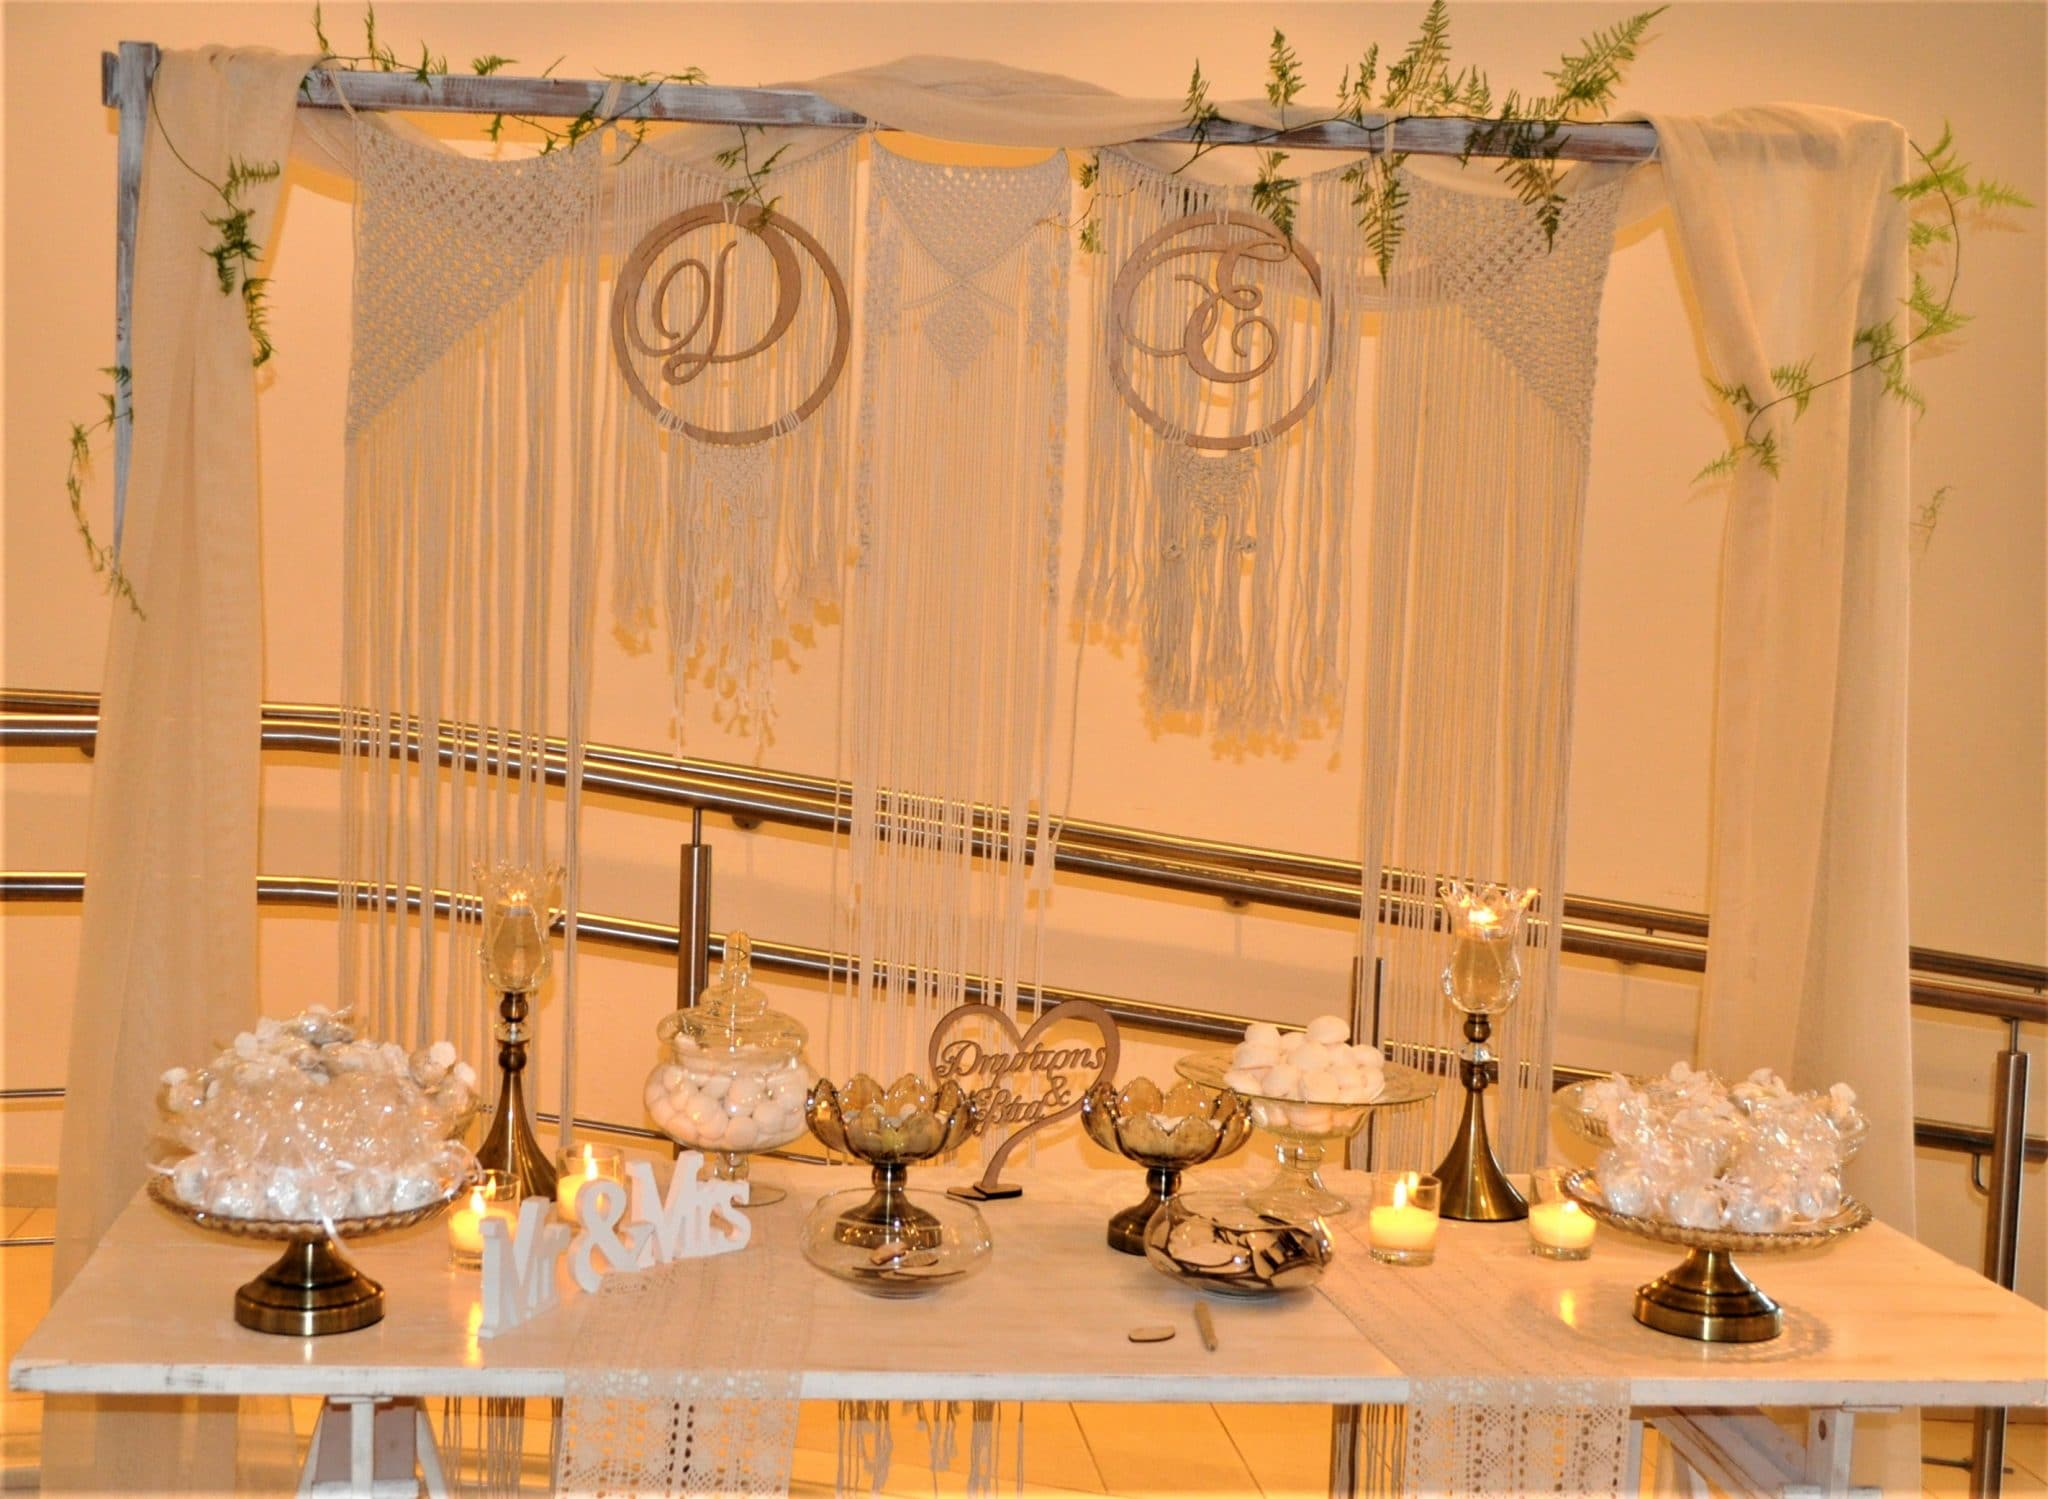 Wishes table with macrame decoration